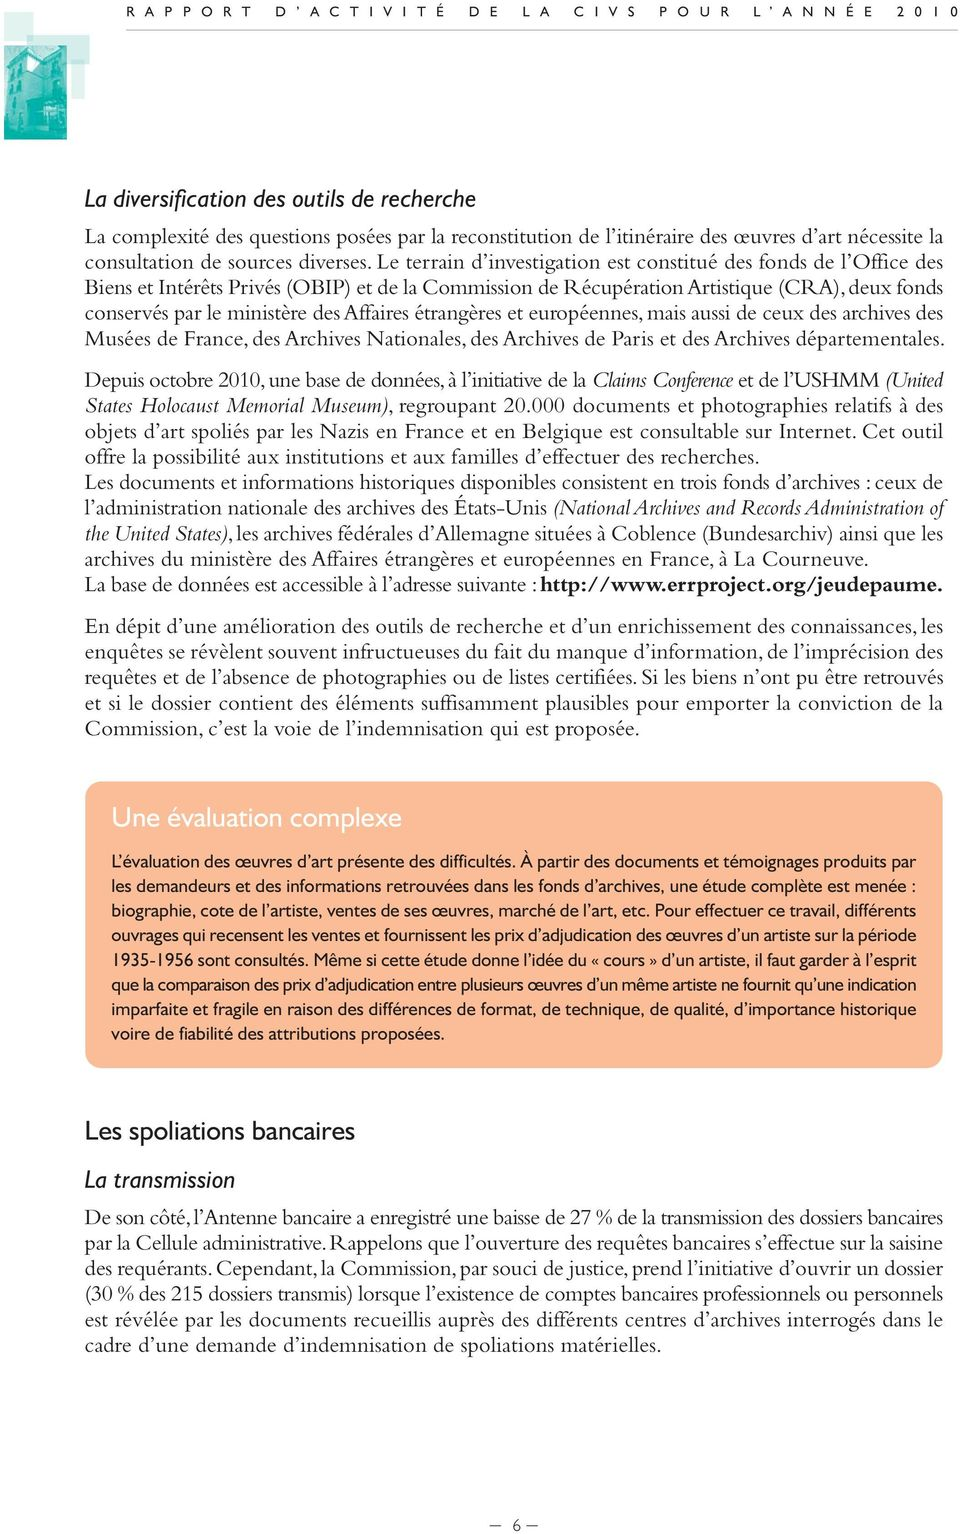 Affaires étrangères et européennes, mais aussi de ceux des archives des Musées de France, des Archives Nationales, des Archives de Paris et des Archives départementales.